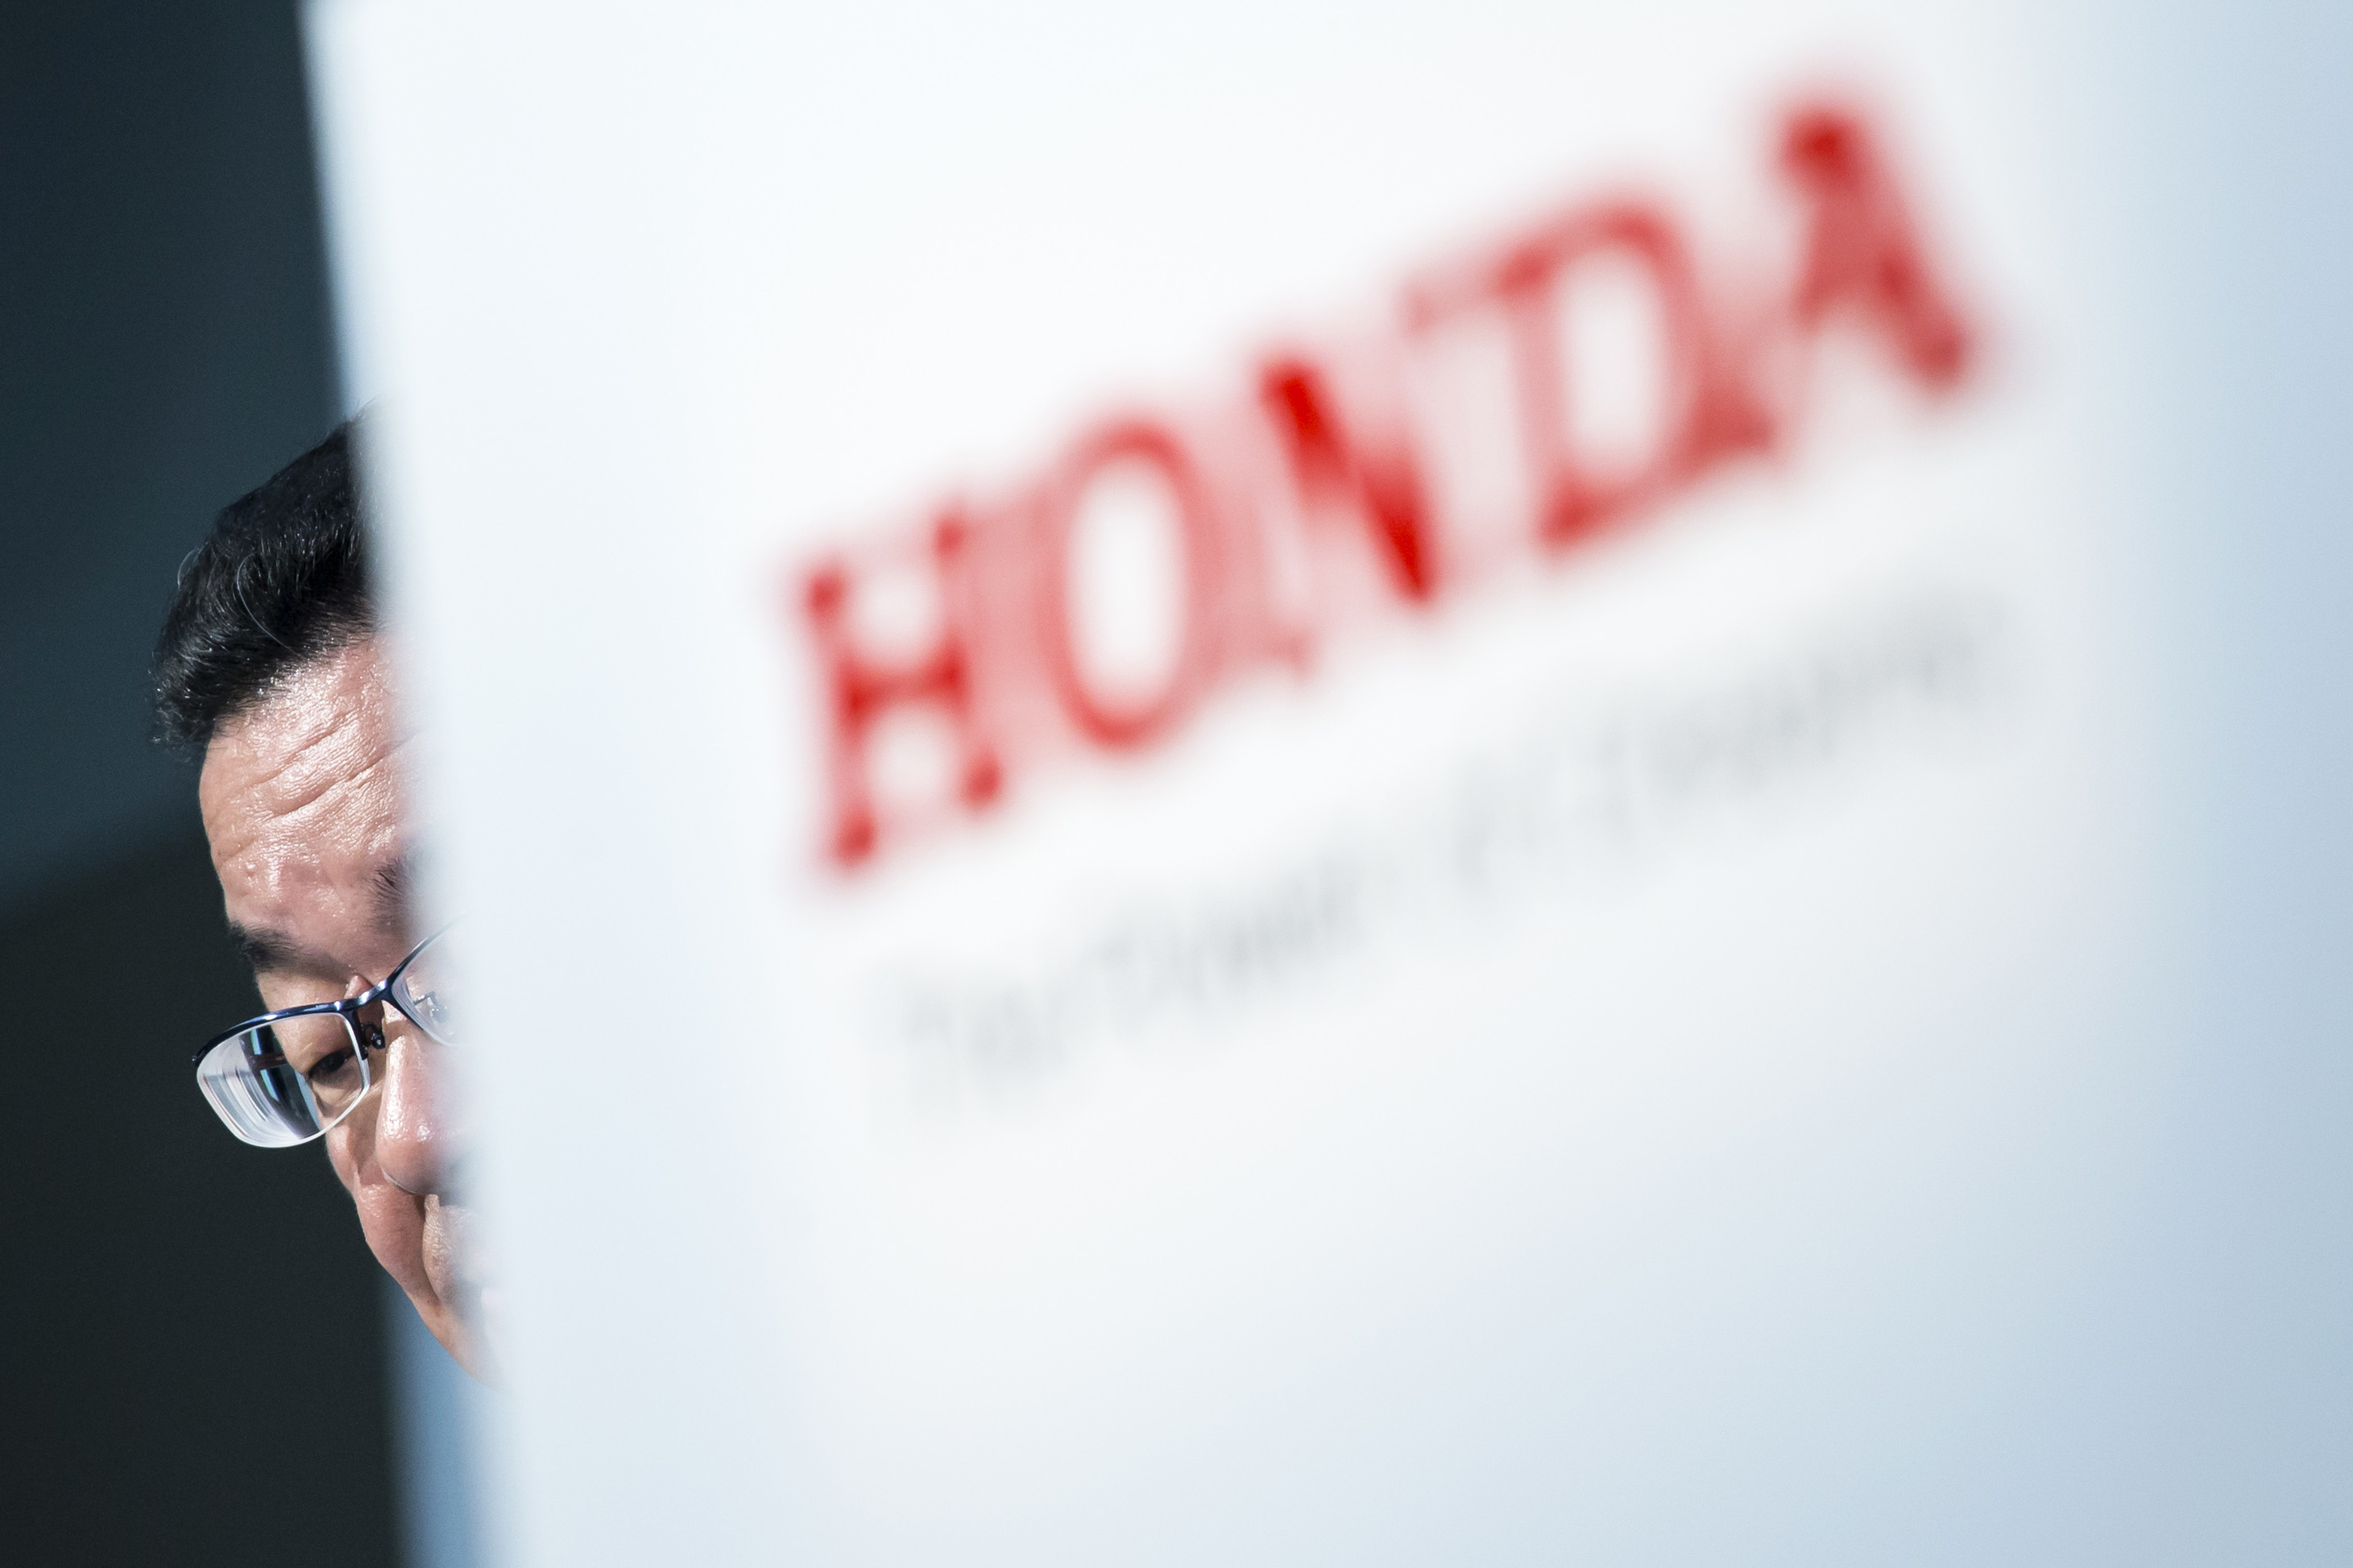 Honda Announces Closure Of Swindon Factory